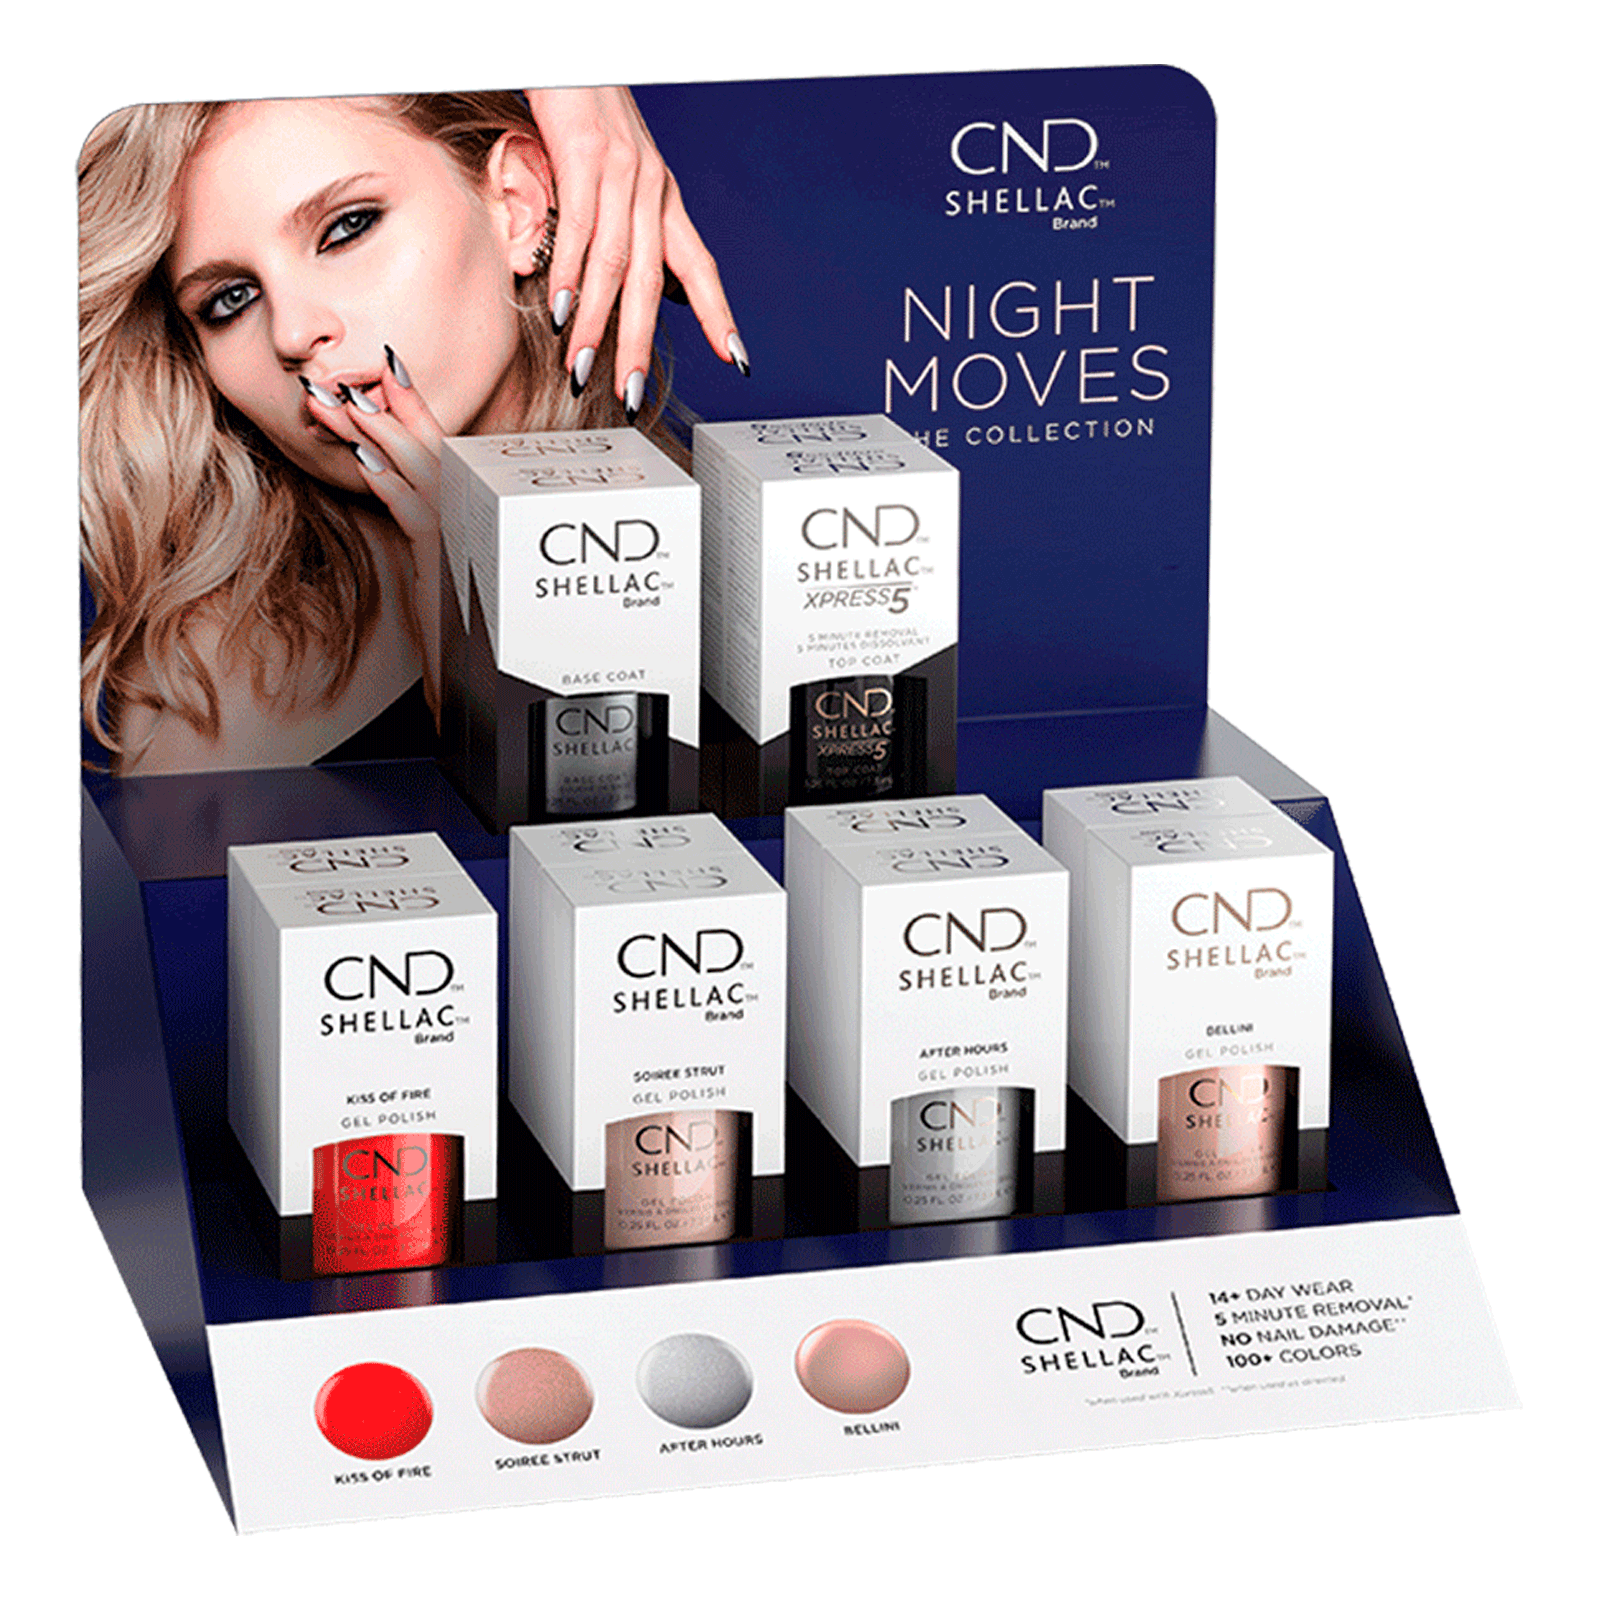 Shellac Night Moves - 12 Count Display